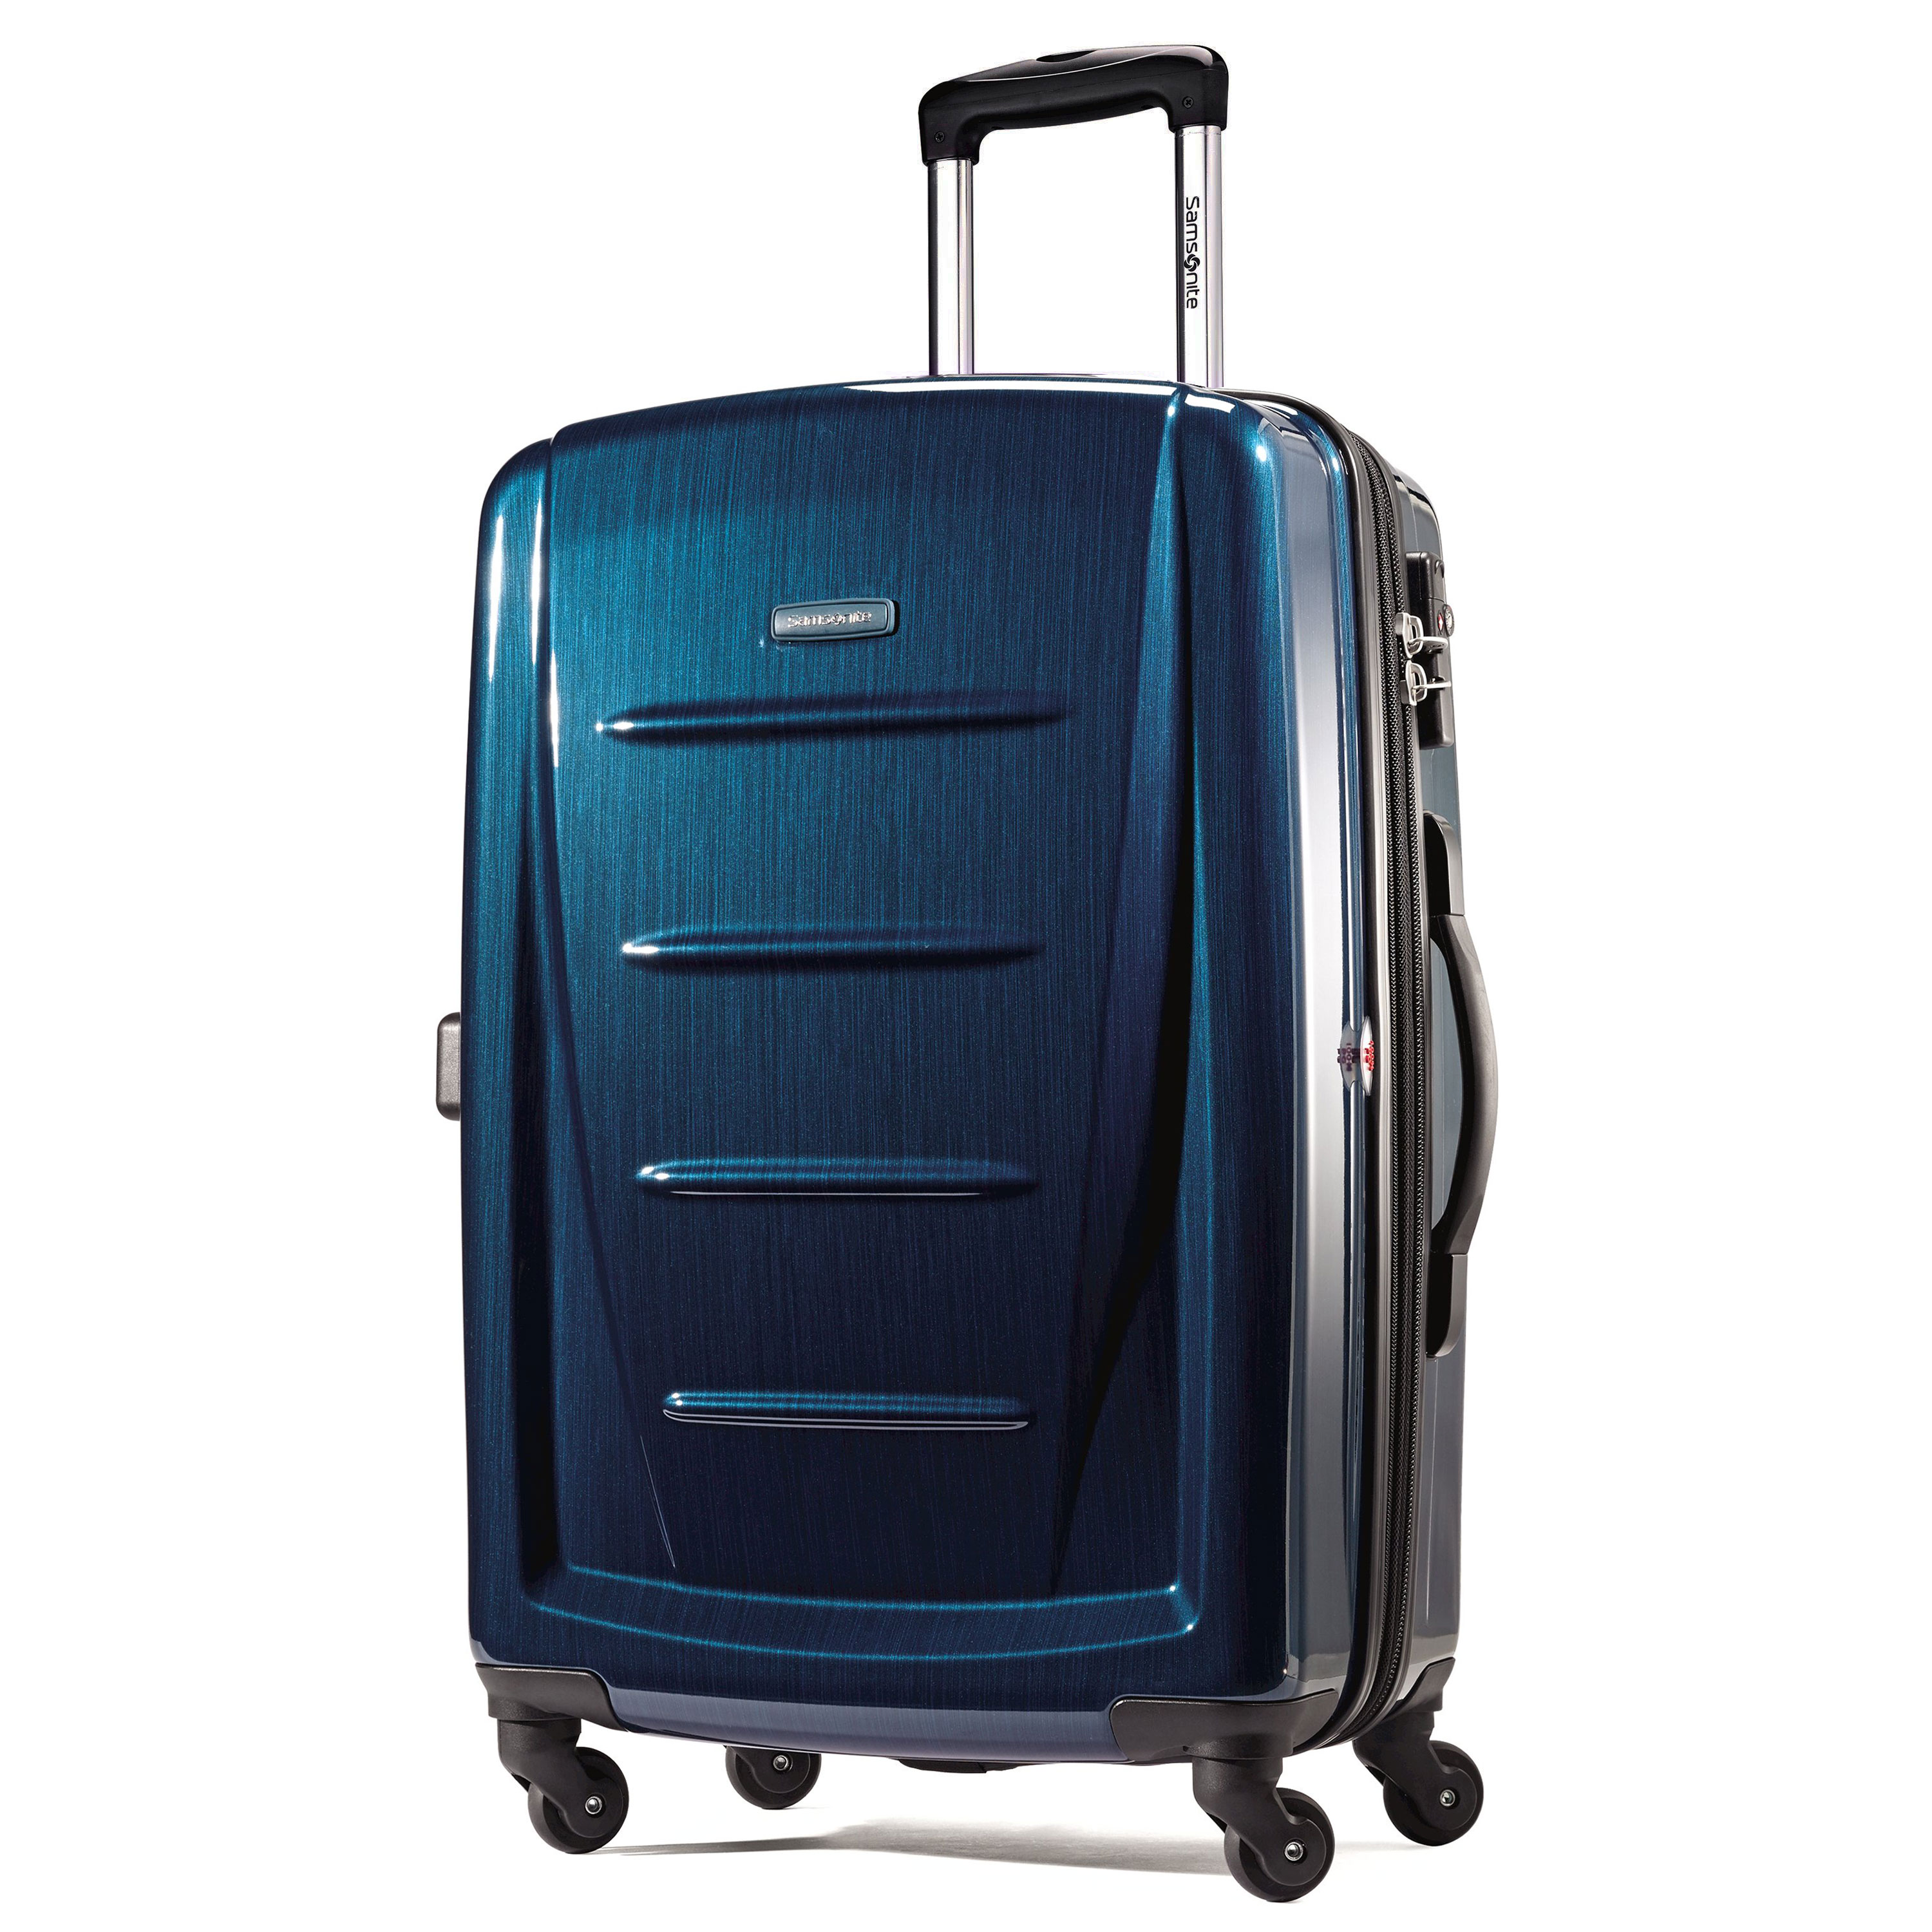 Samsonite-Winfield-2-Fashion-Spinner-Luggage thumbnail 25